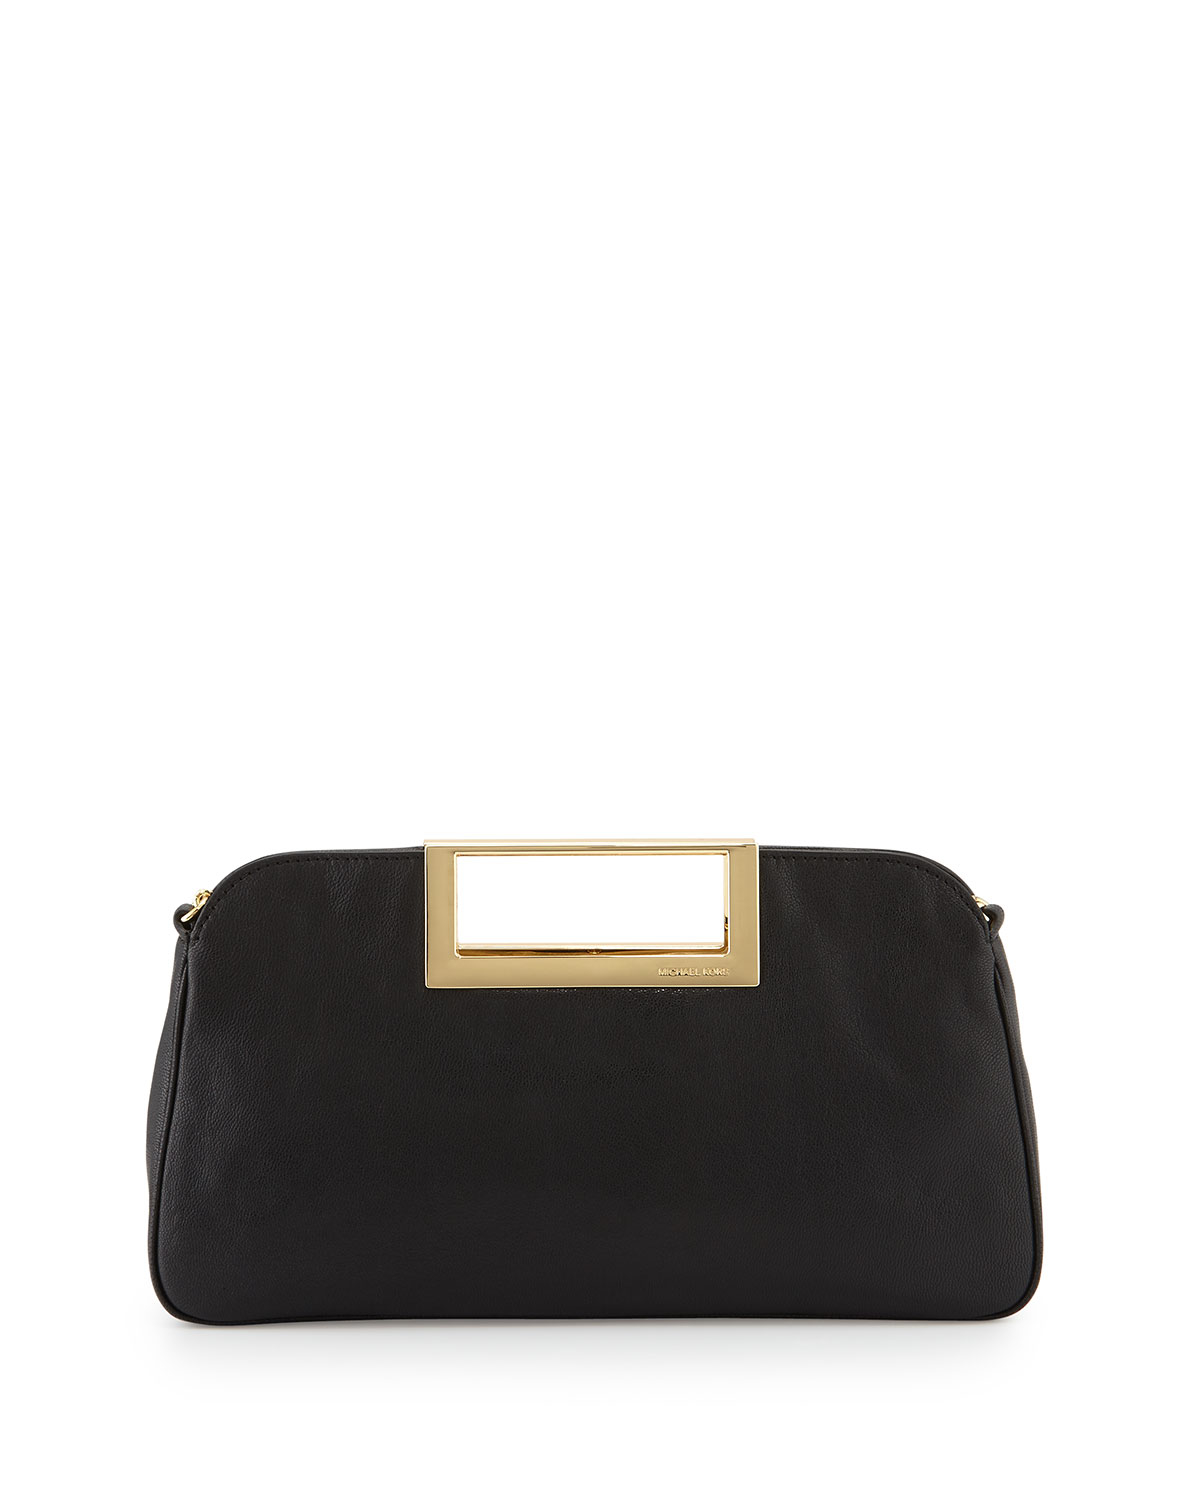 Michael michael kors Berkley Large Leather Clutch Bag in Black | Lyst